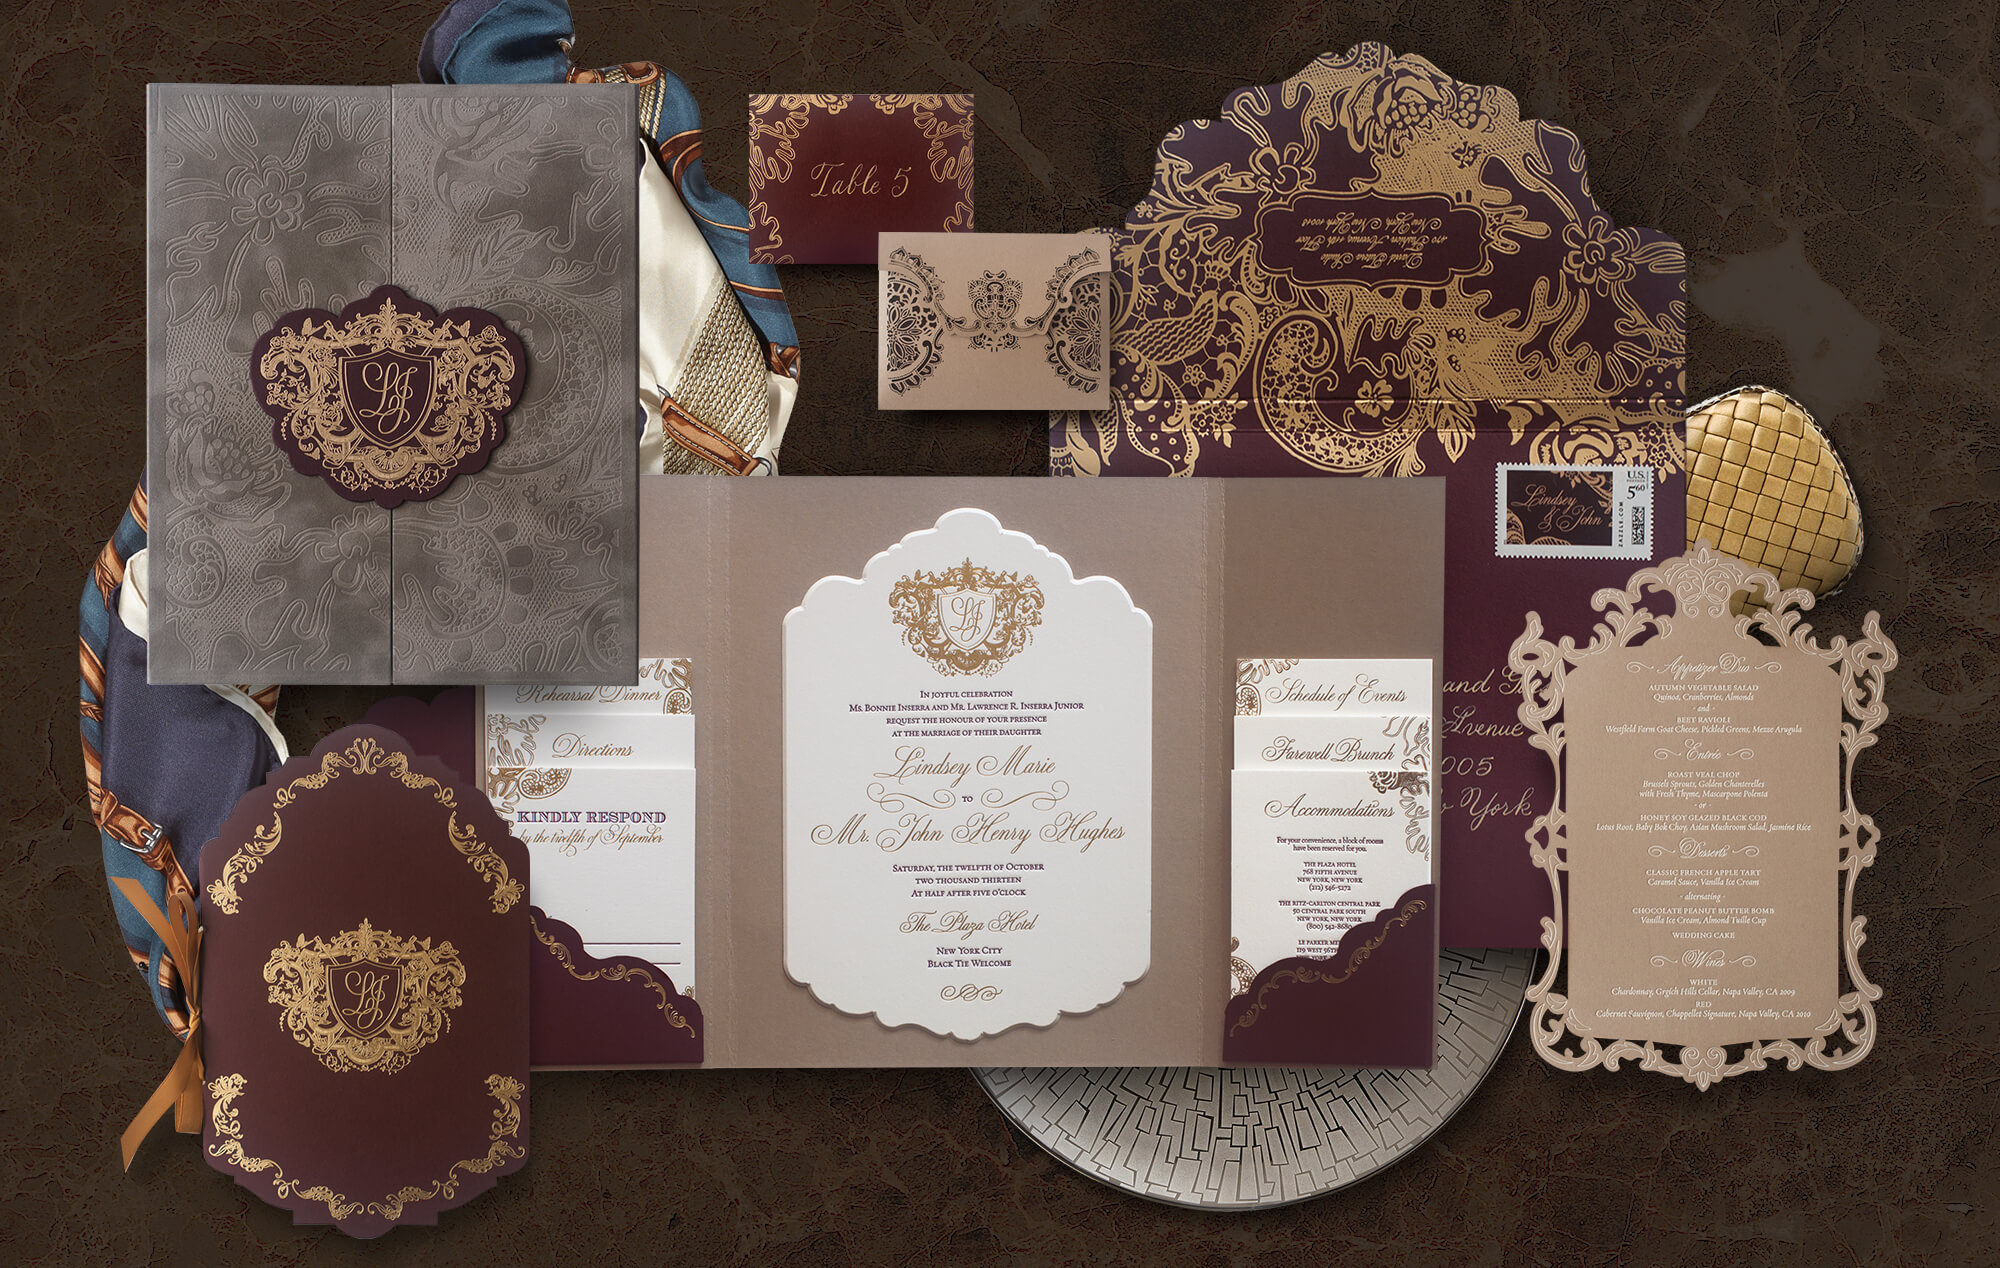 Ornate wedding invitation suite inspired by the Plaza Hotel